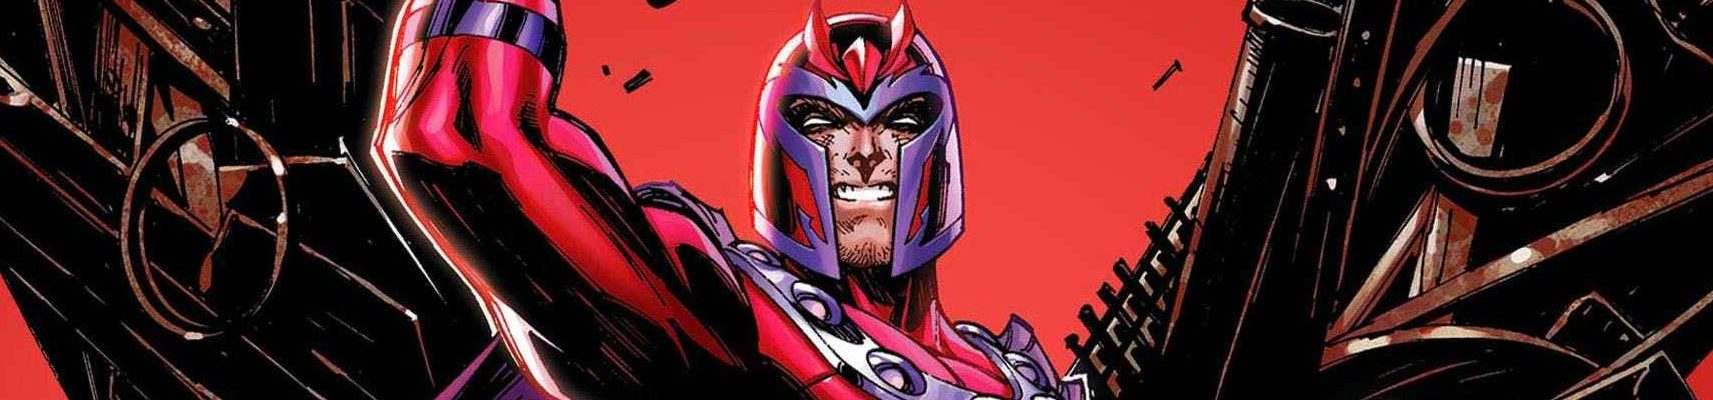 X-Men: Black - Magneto #1